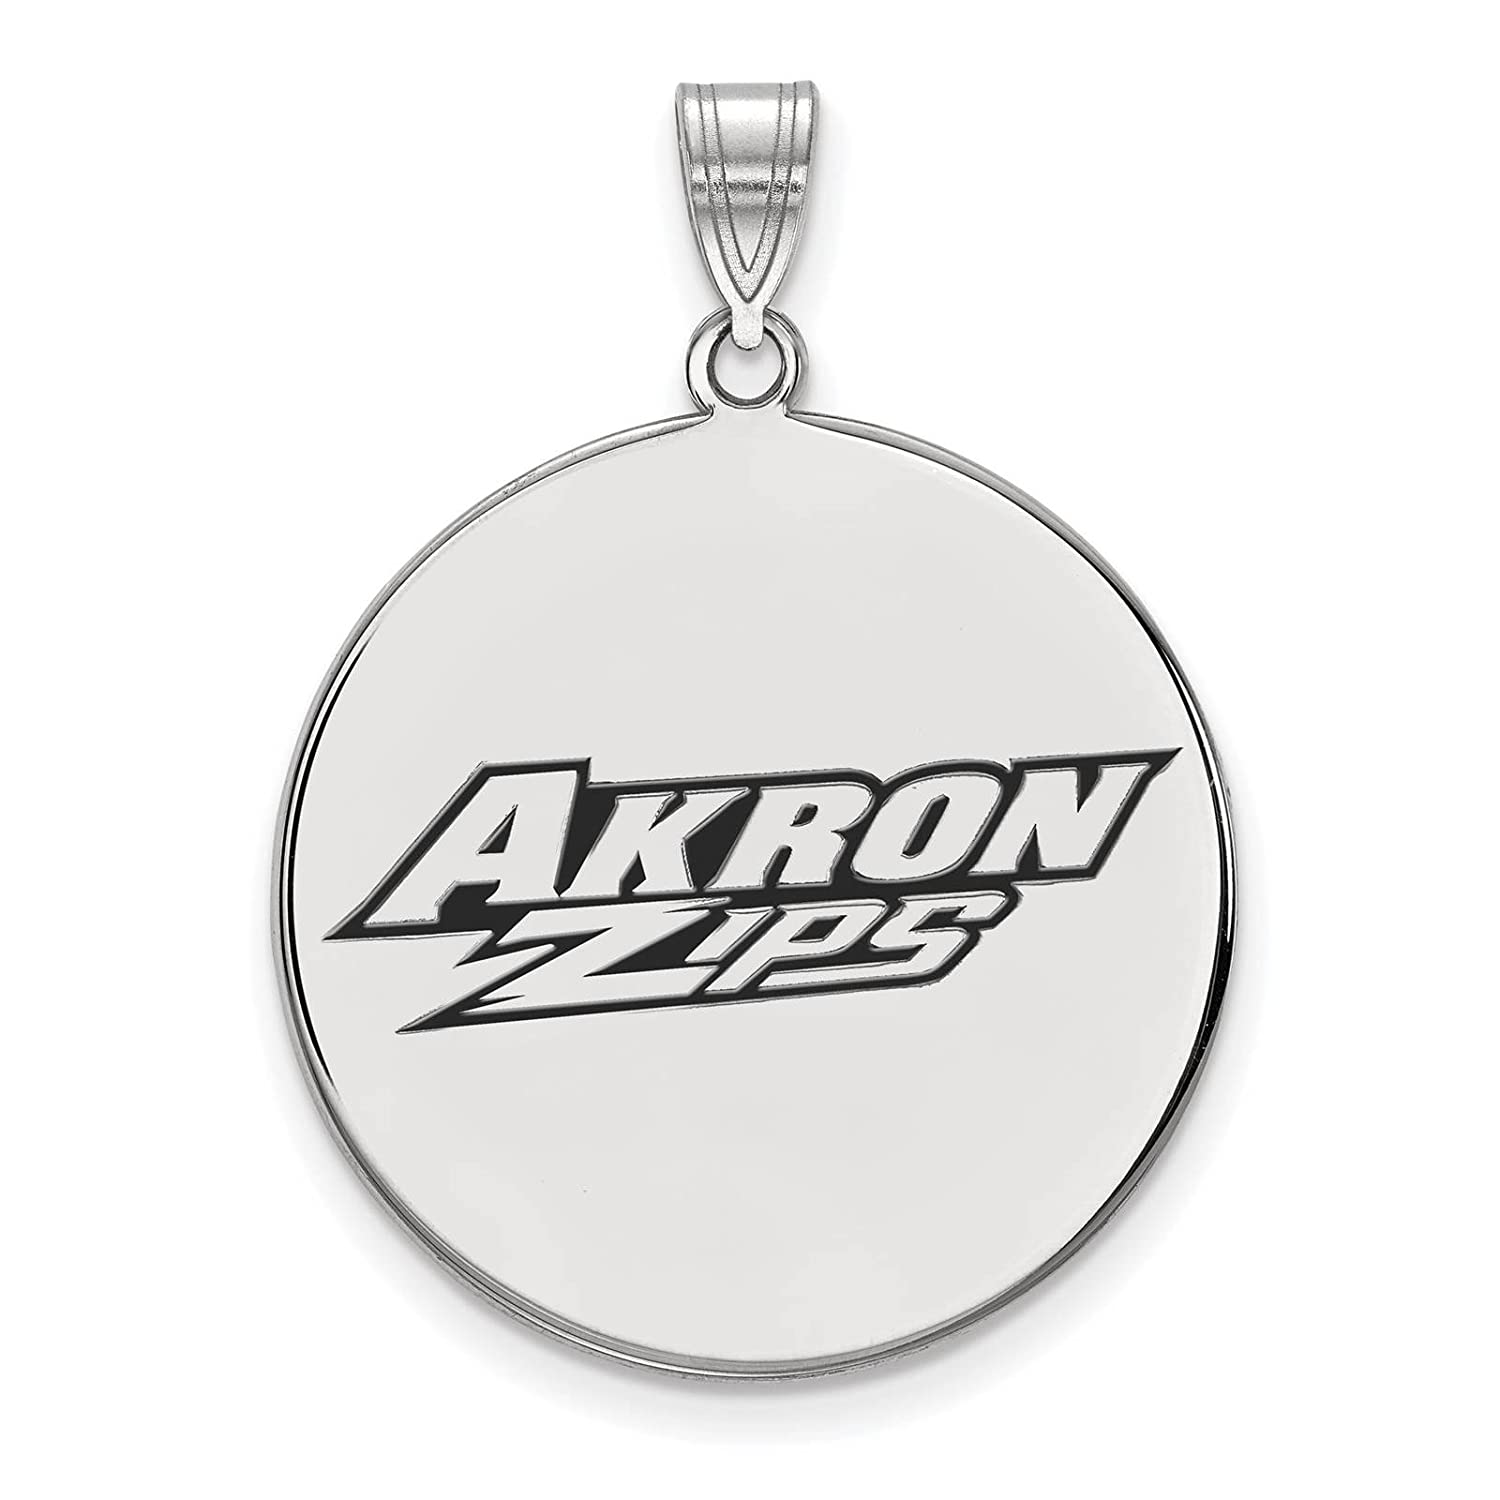 925 Sterling Silver Rhodium-plated Laser-cut Univeristy of Akron XL Enameled Disc Pendant